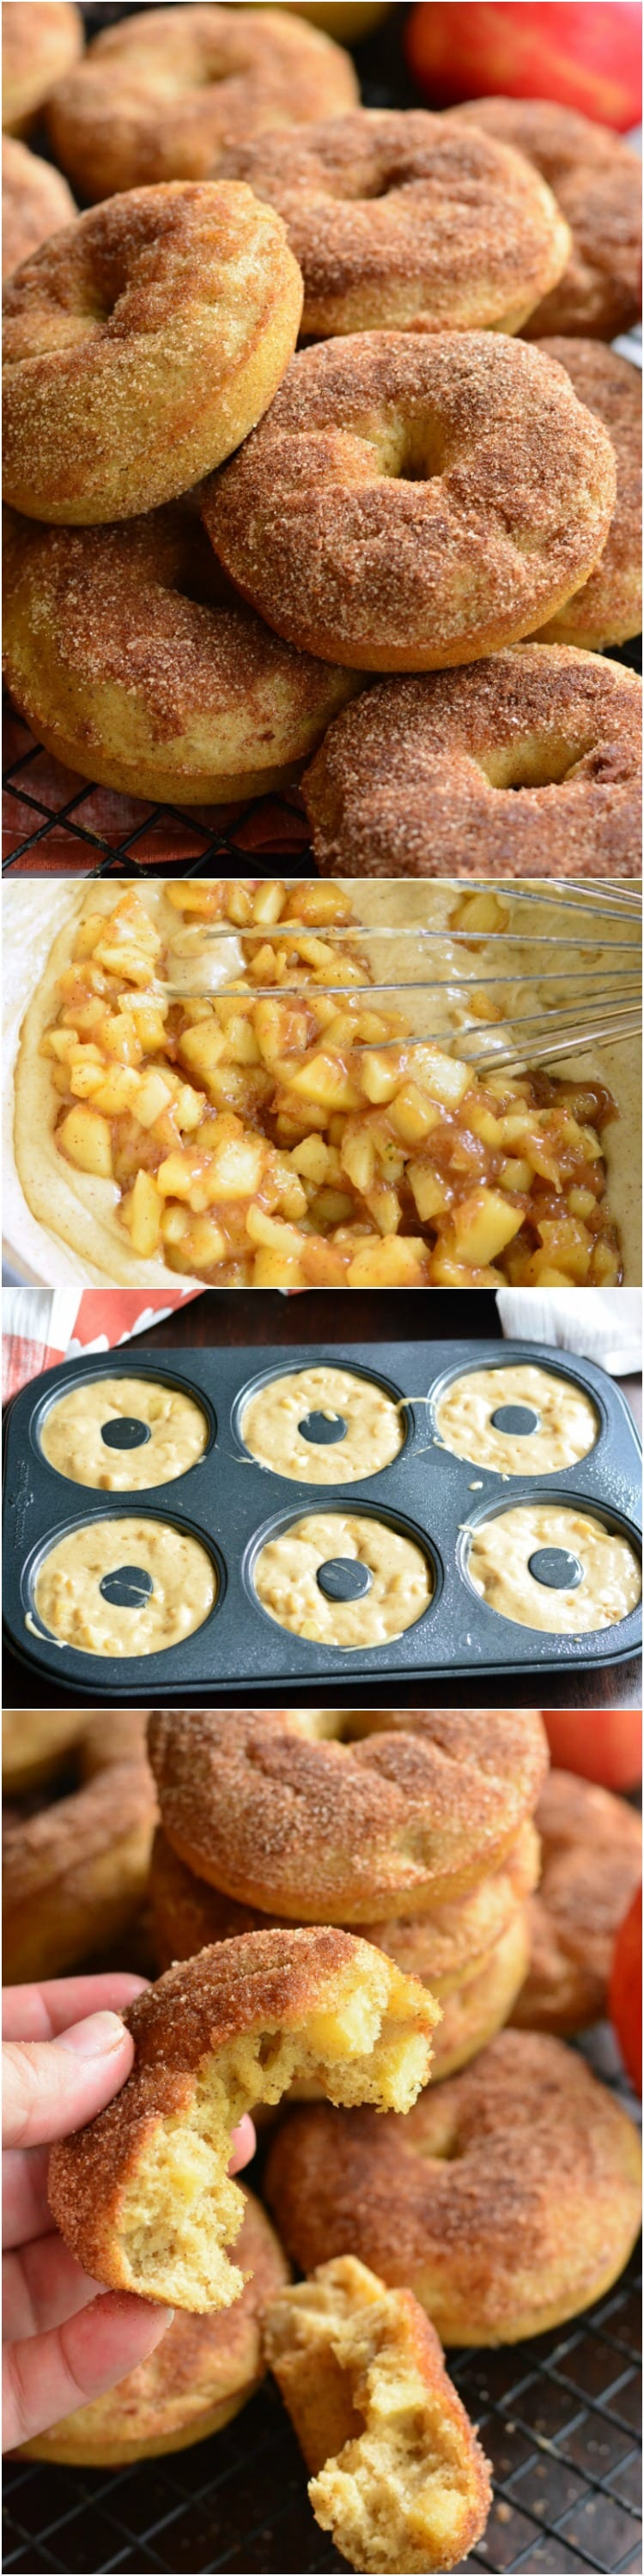 collage 1st picture of Apple Pie Baked Doughnuts stacked on cooling rack, 2nd mixture of batter and apples being whisked, 3rd donut batter in donut pan, 3rd me holding half the donut in my hand